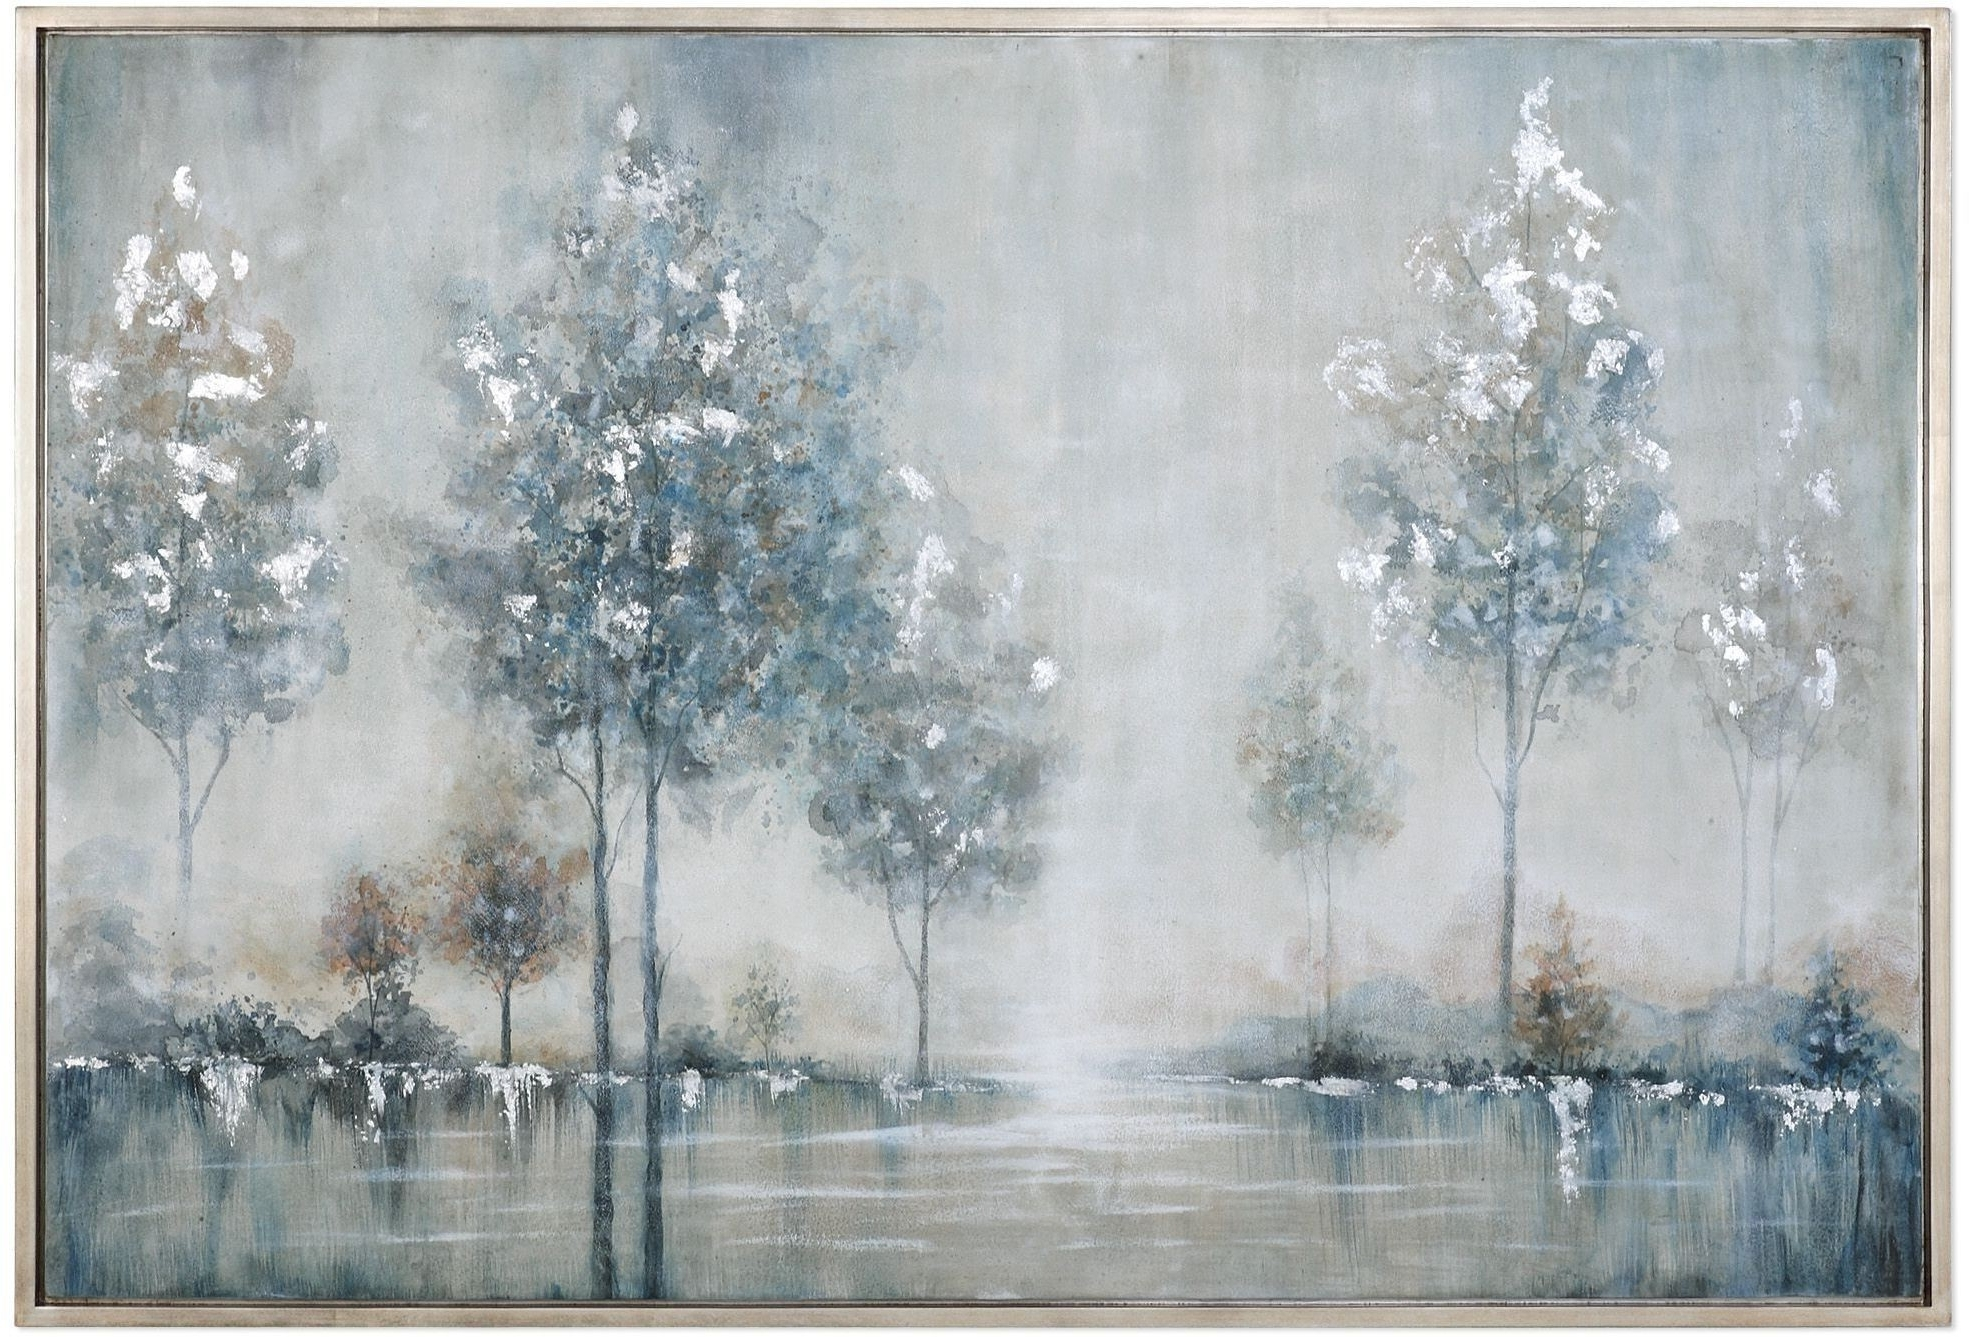 Preferred Walk In The Good Uttermost Wall Art – Wall Decoration Ideas Intended For Uttermost Wall Art (View 8 of 15)